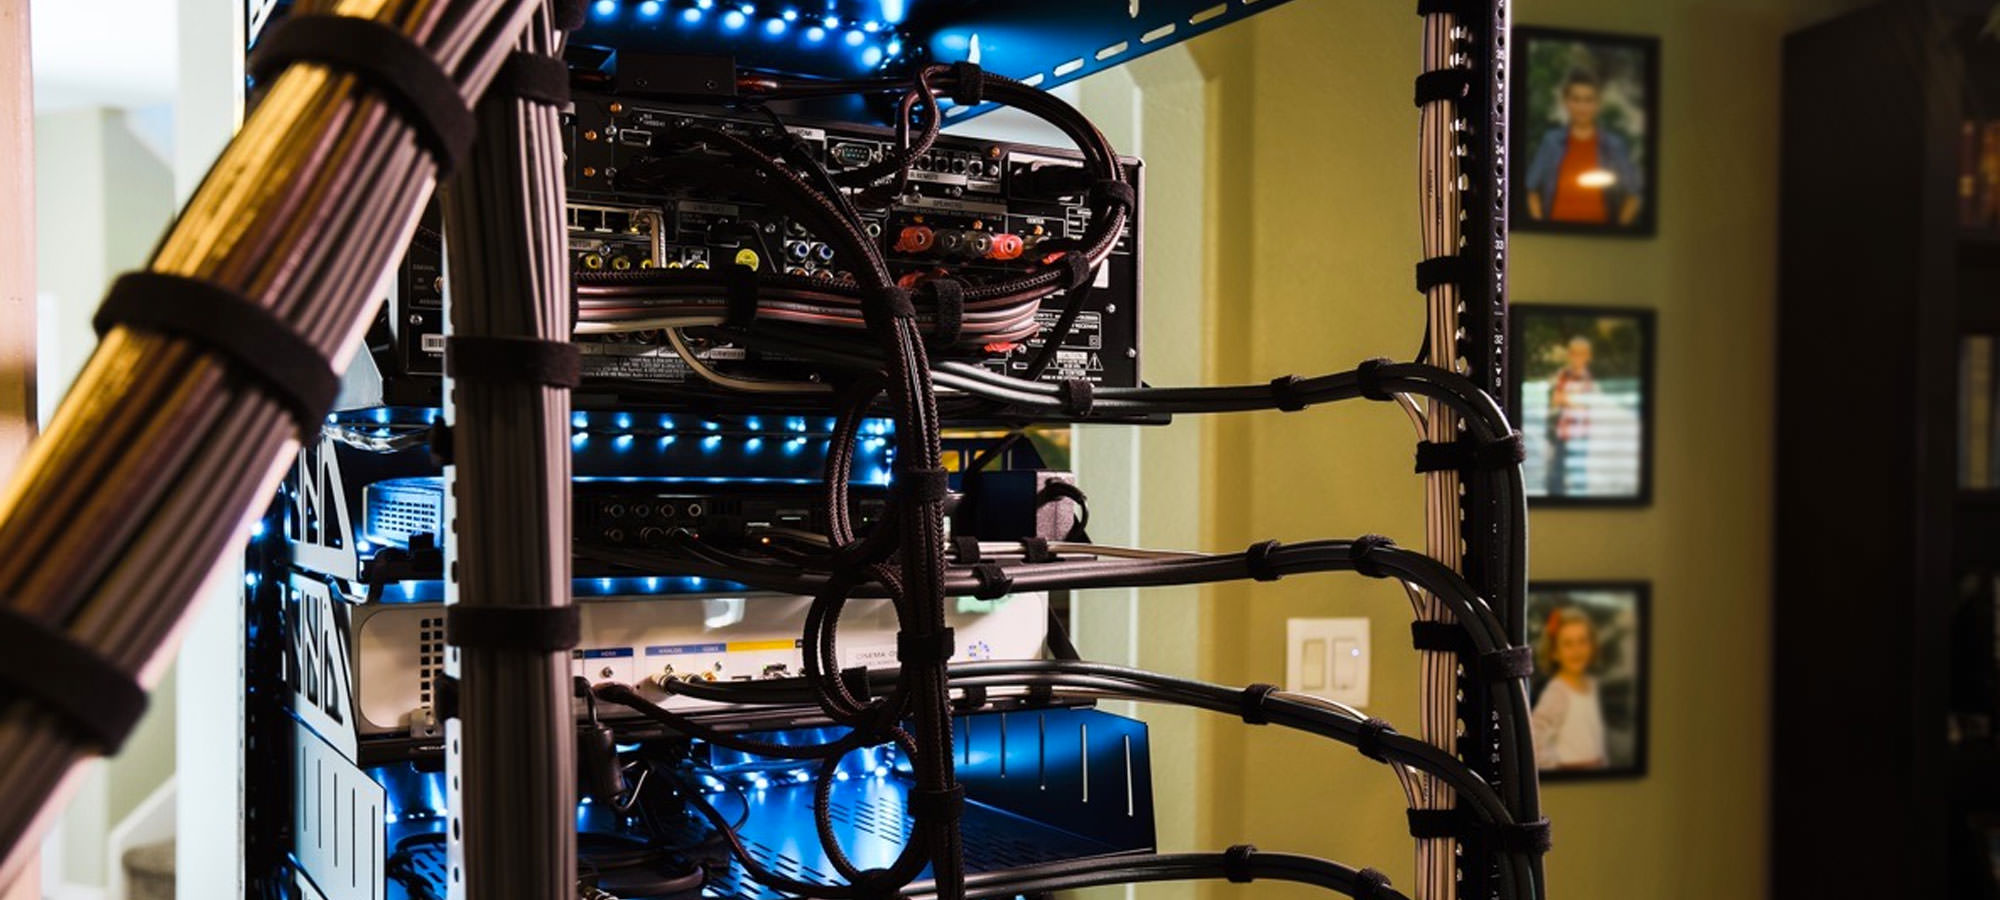 A Professionally Installed Network In Your Home Will Benefit Your Daily Life